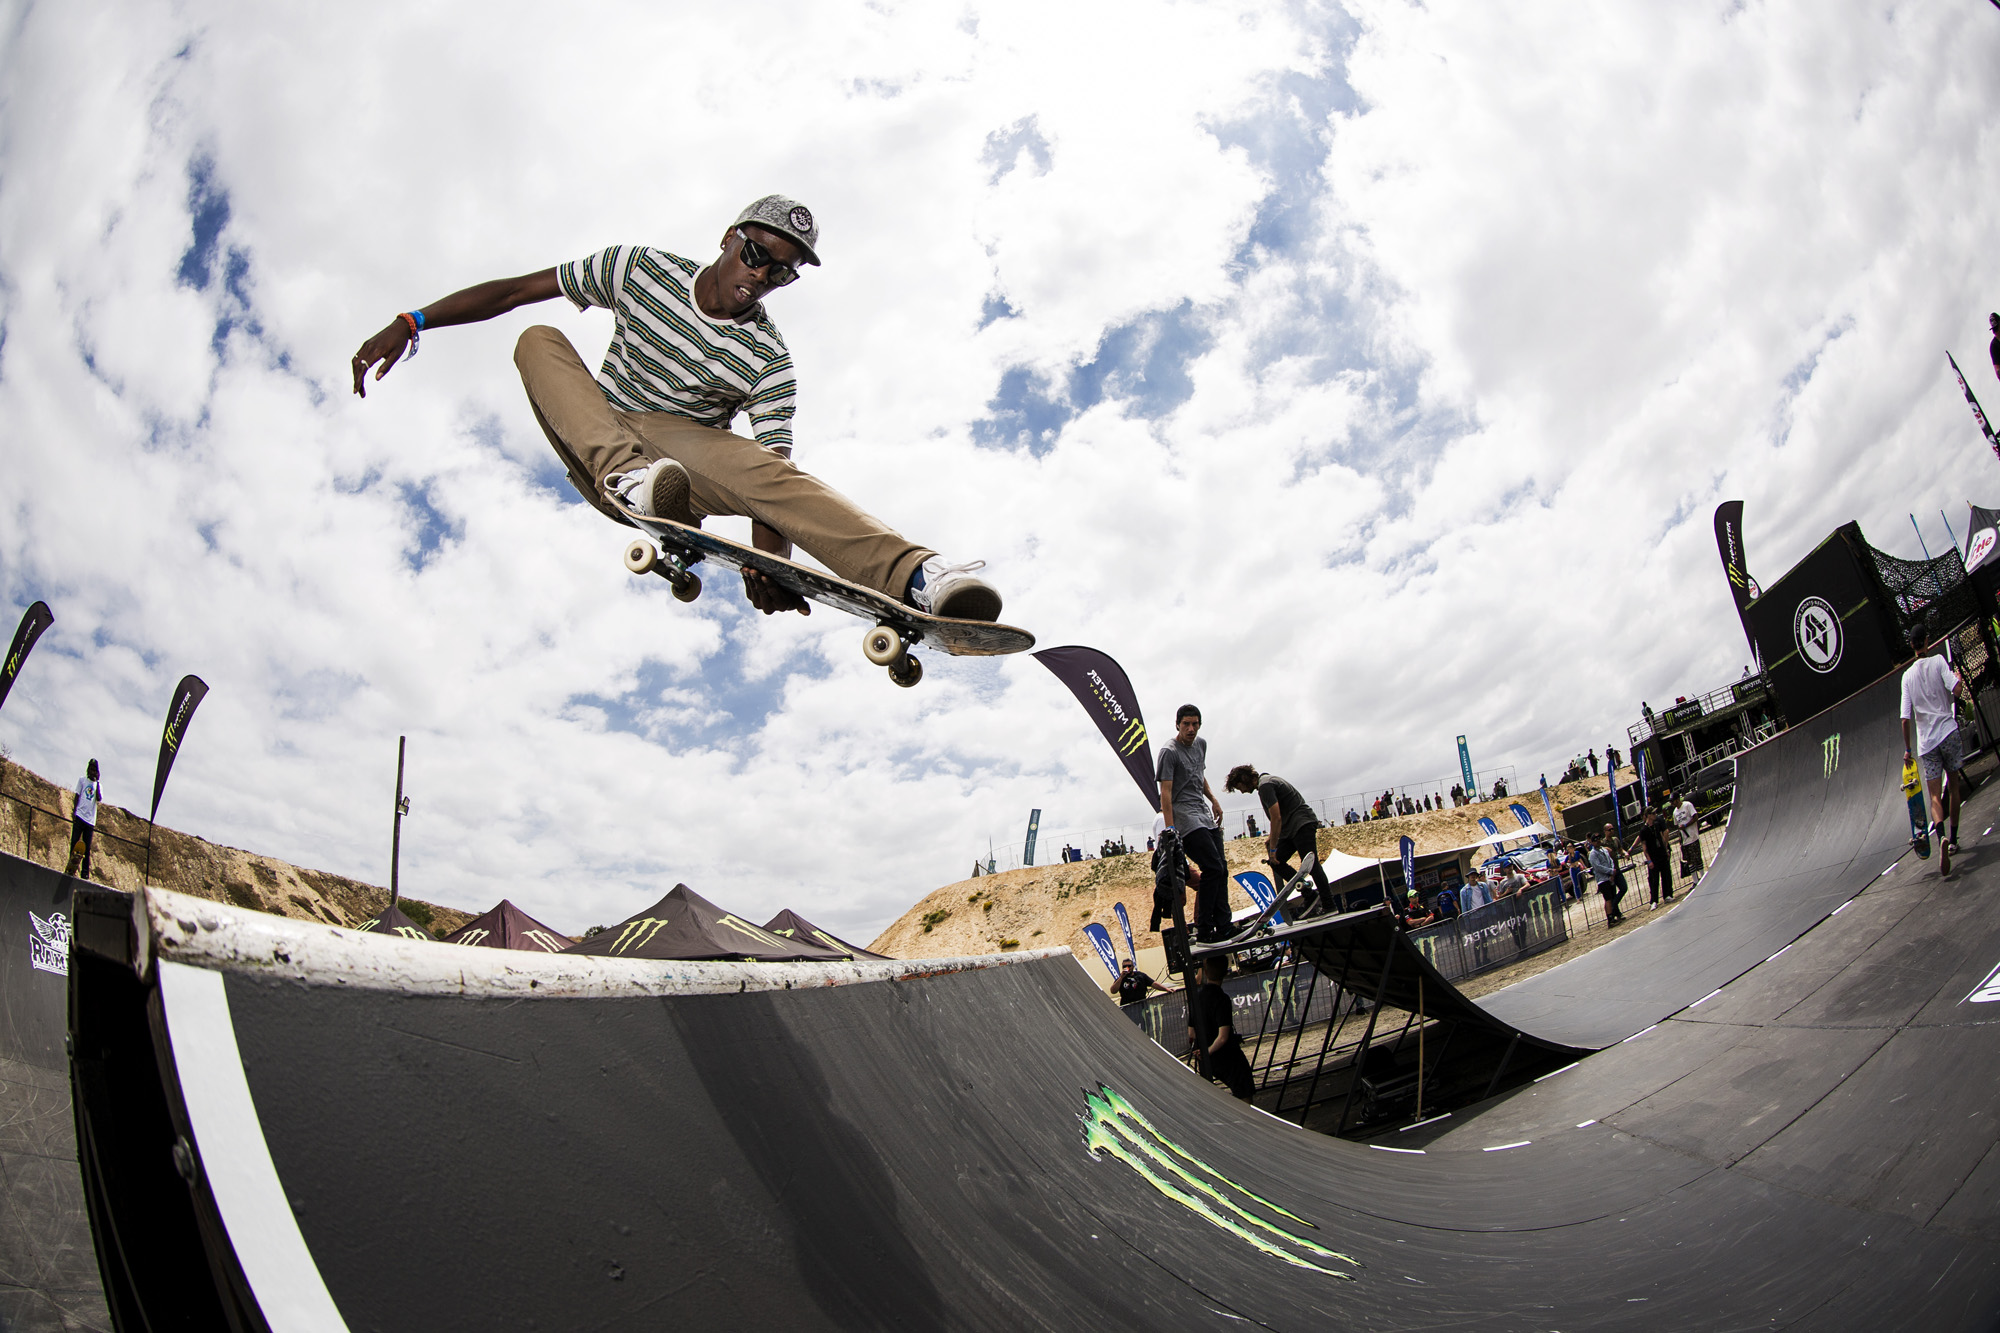 Thalente Biyela skateboarding his way to victory at stop 2 of the Ramp Rodeo